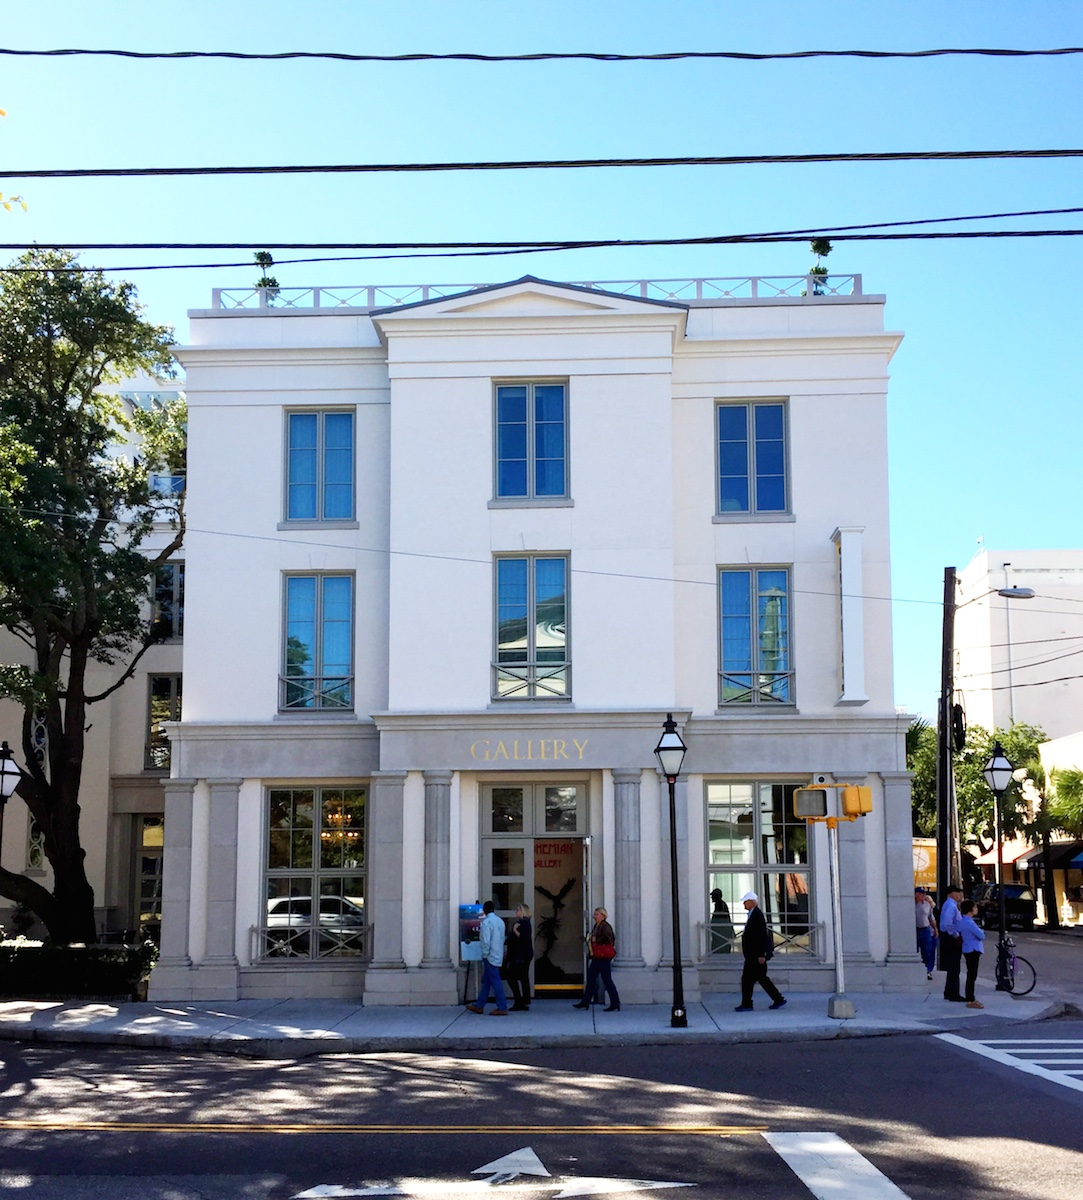 The Charleston Grand Bohemian Hotel is predominantly stucco. The columns and cornice at the ground level are cast stone. The cornice at the top of the 3rd floor is GFRC.